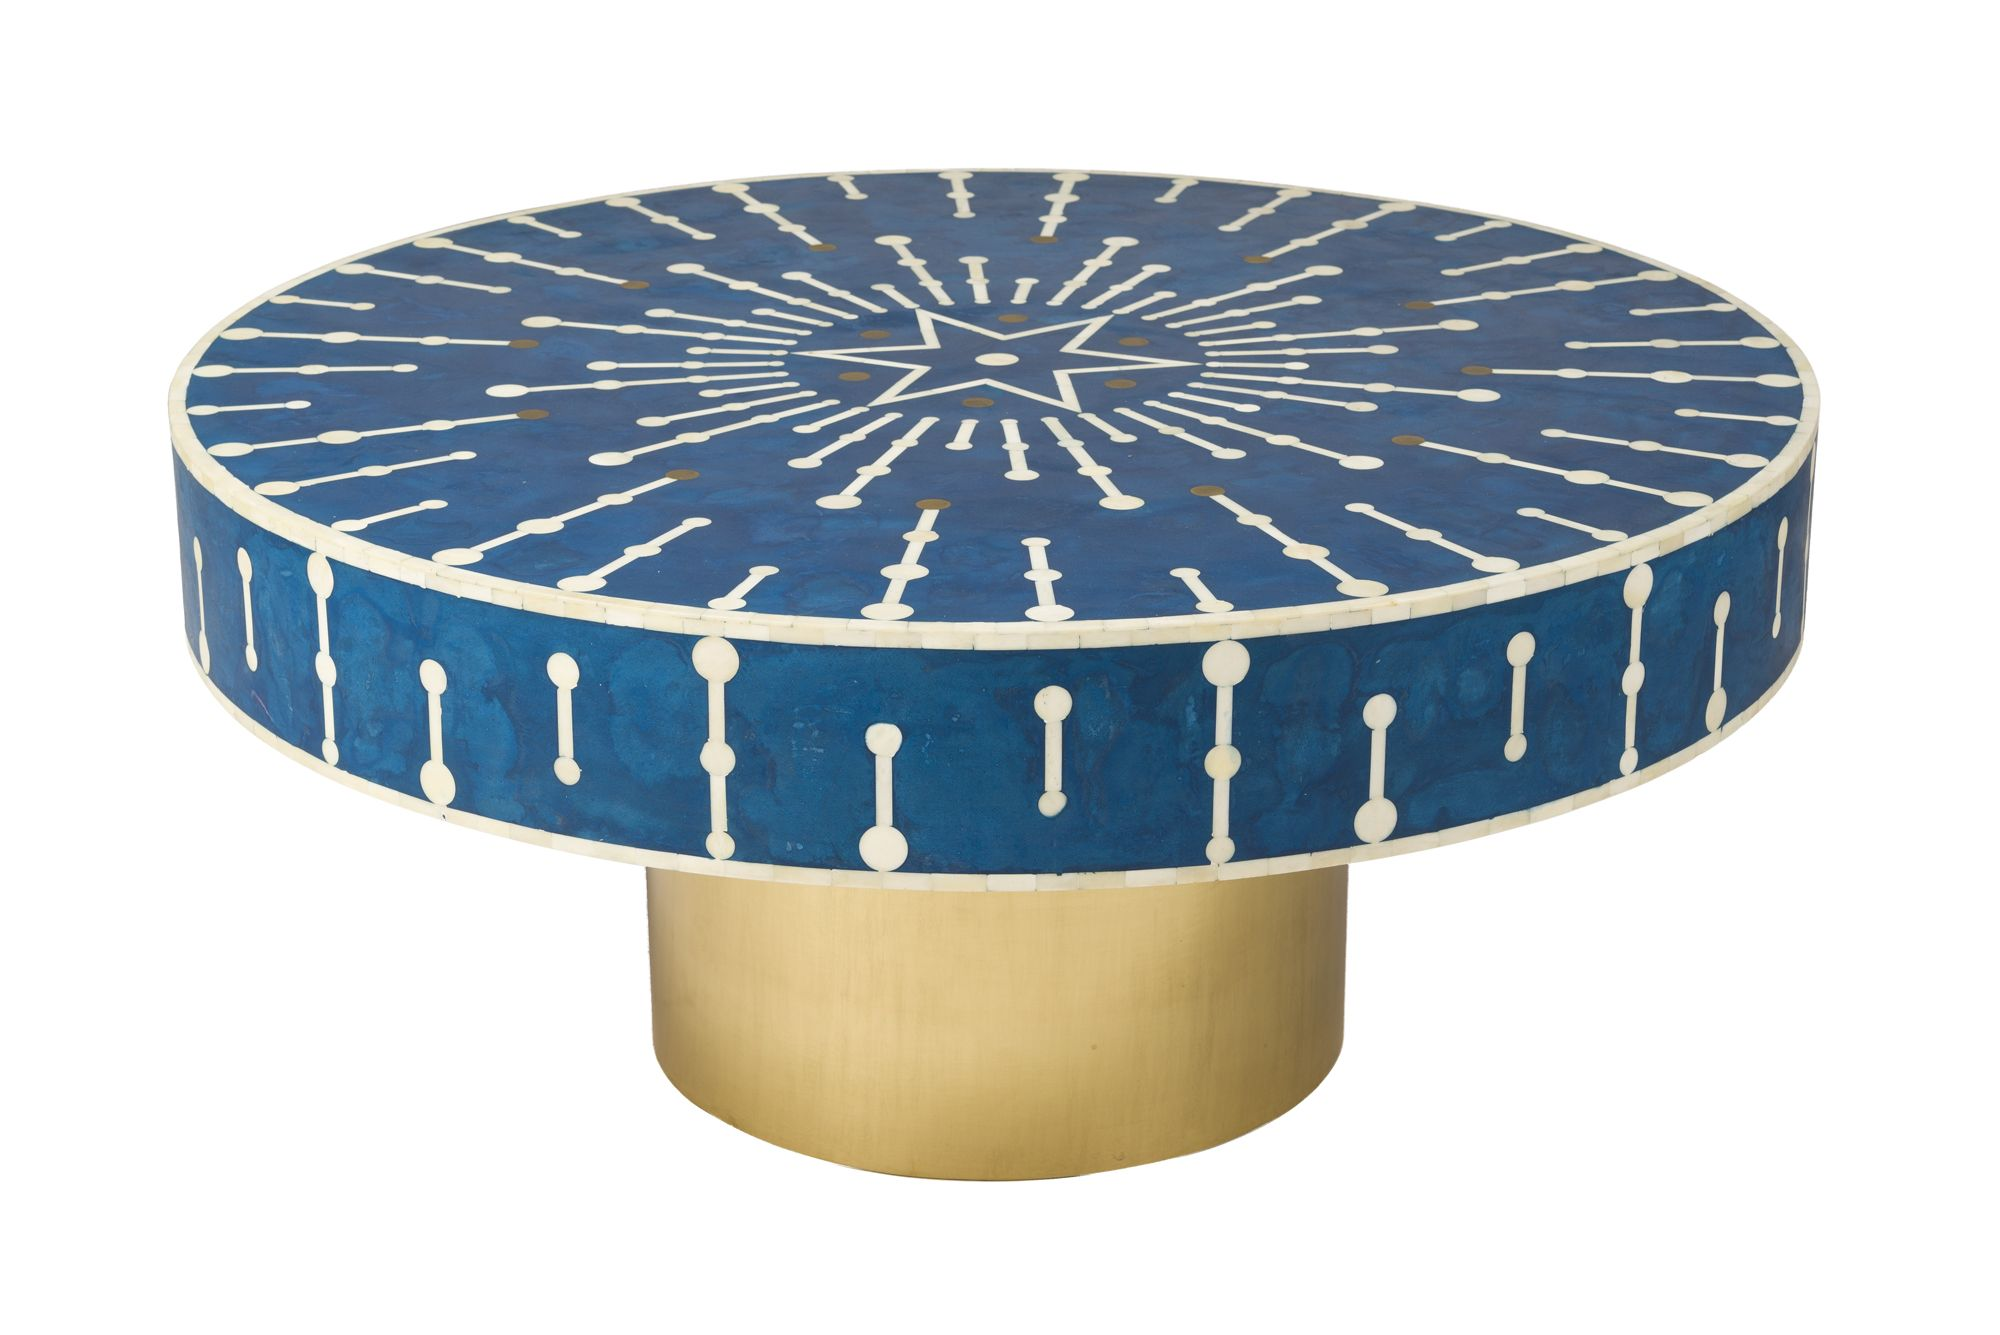 5th Ave Santorini Coffee Table Has A Bone And Resin Inlay This